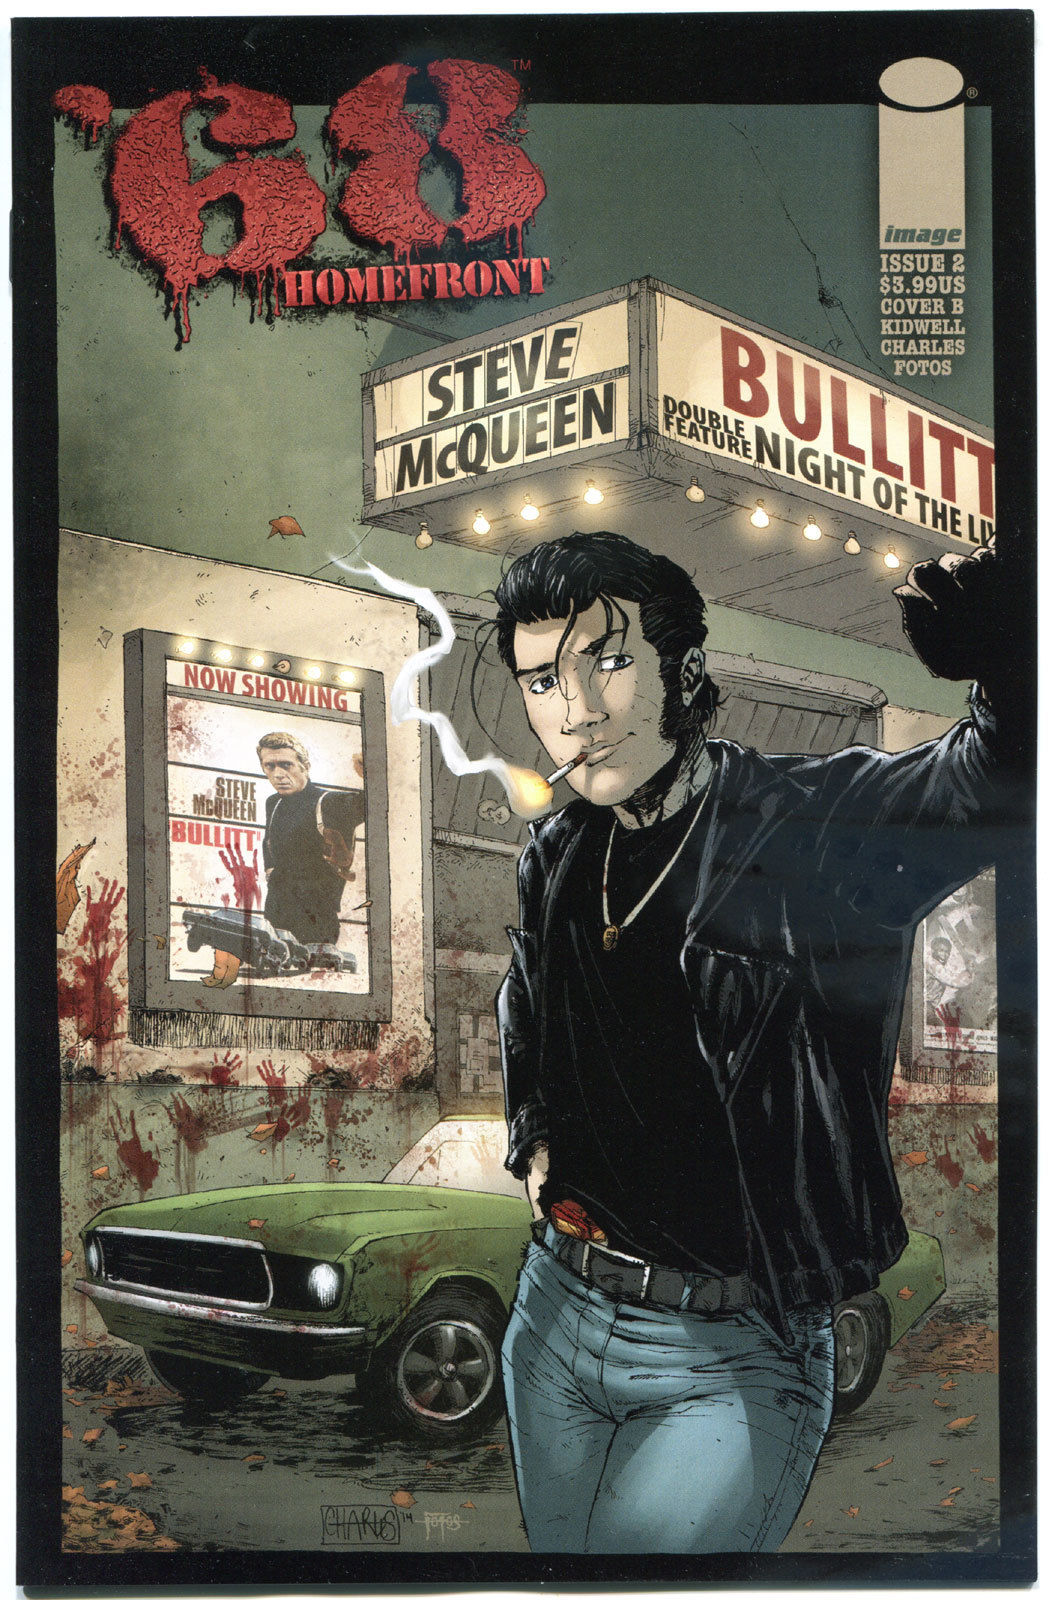 '68 HOMEFRONT #2 B, NM,1st Print, Zombie, Walking Dead, 2014, more in store